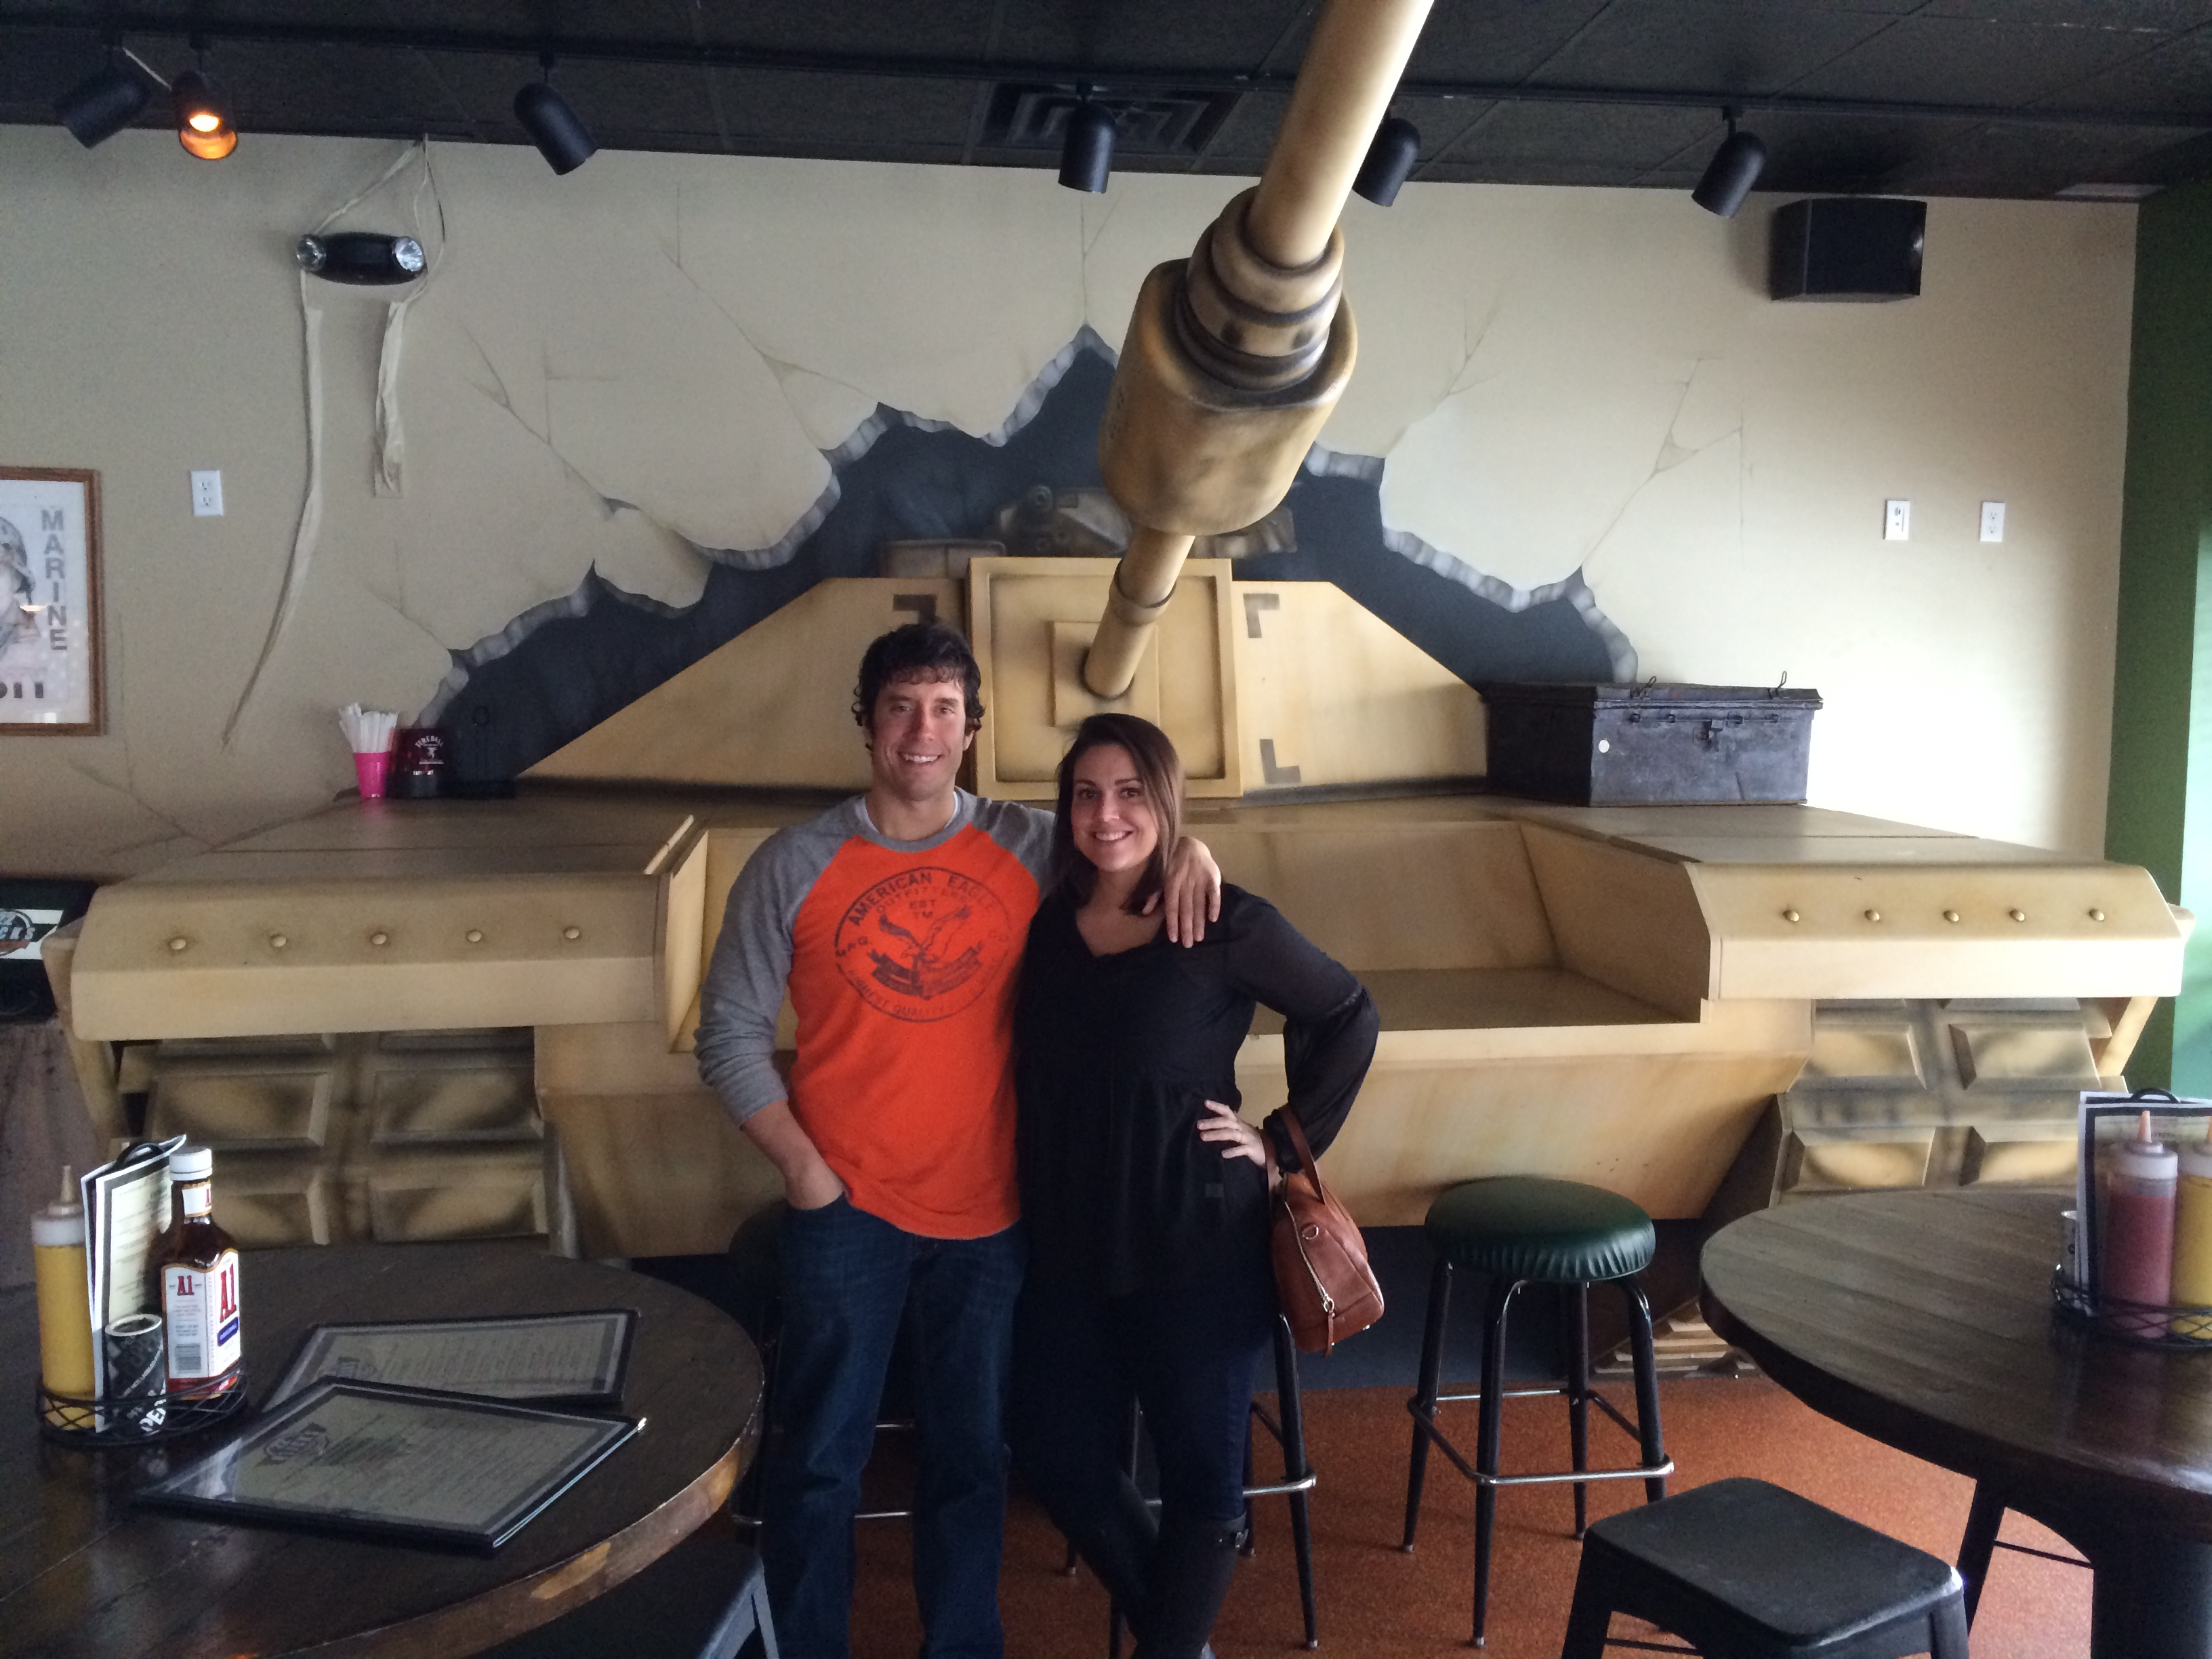 Sidney and I in front of the tank at Klick's 22.